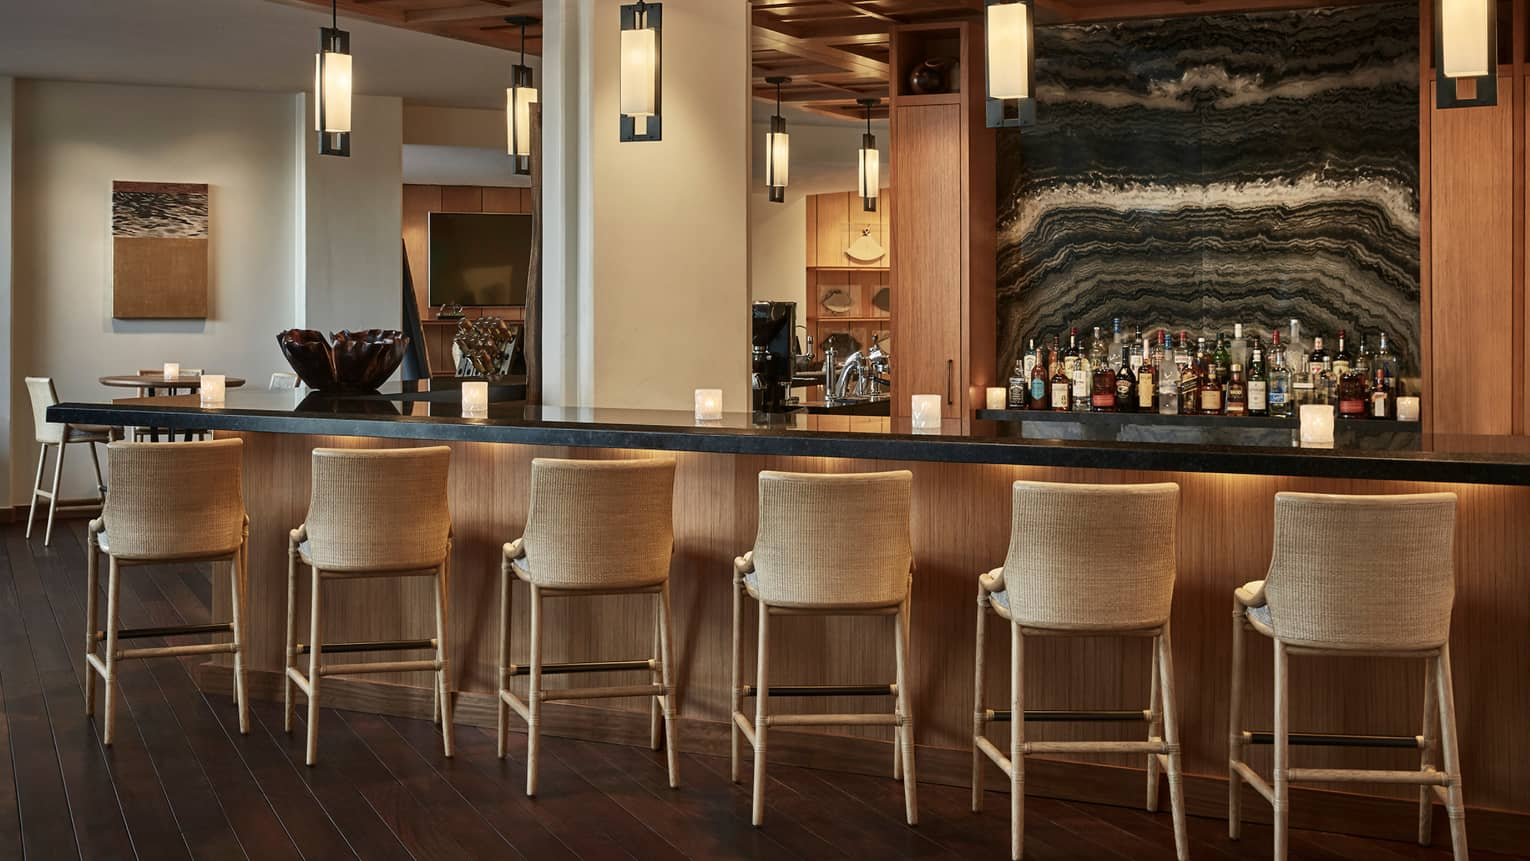 Wicker stools line Hokulea bar with lights, liquor bottles on shelves by wave-like pattern wall